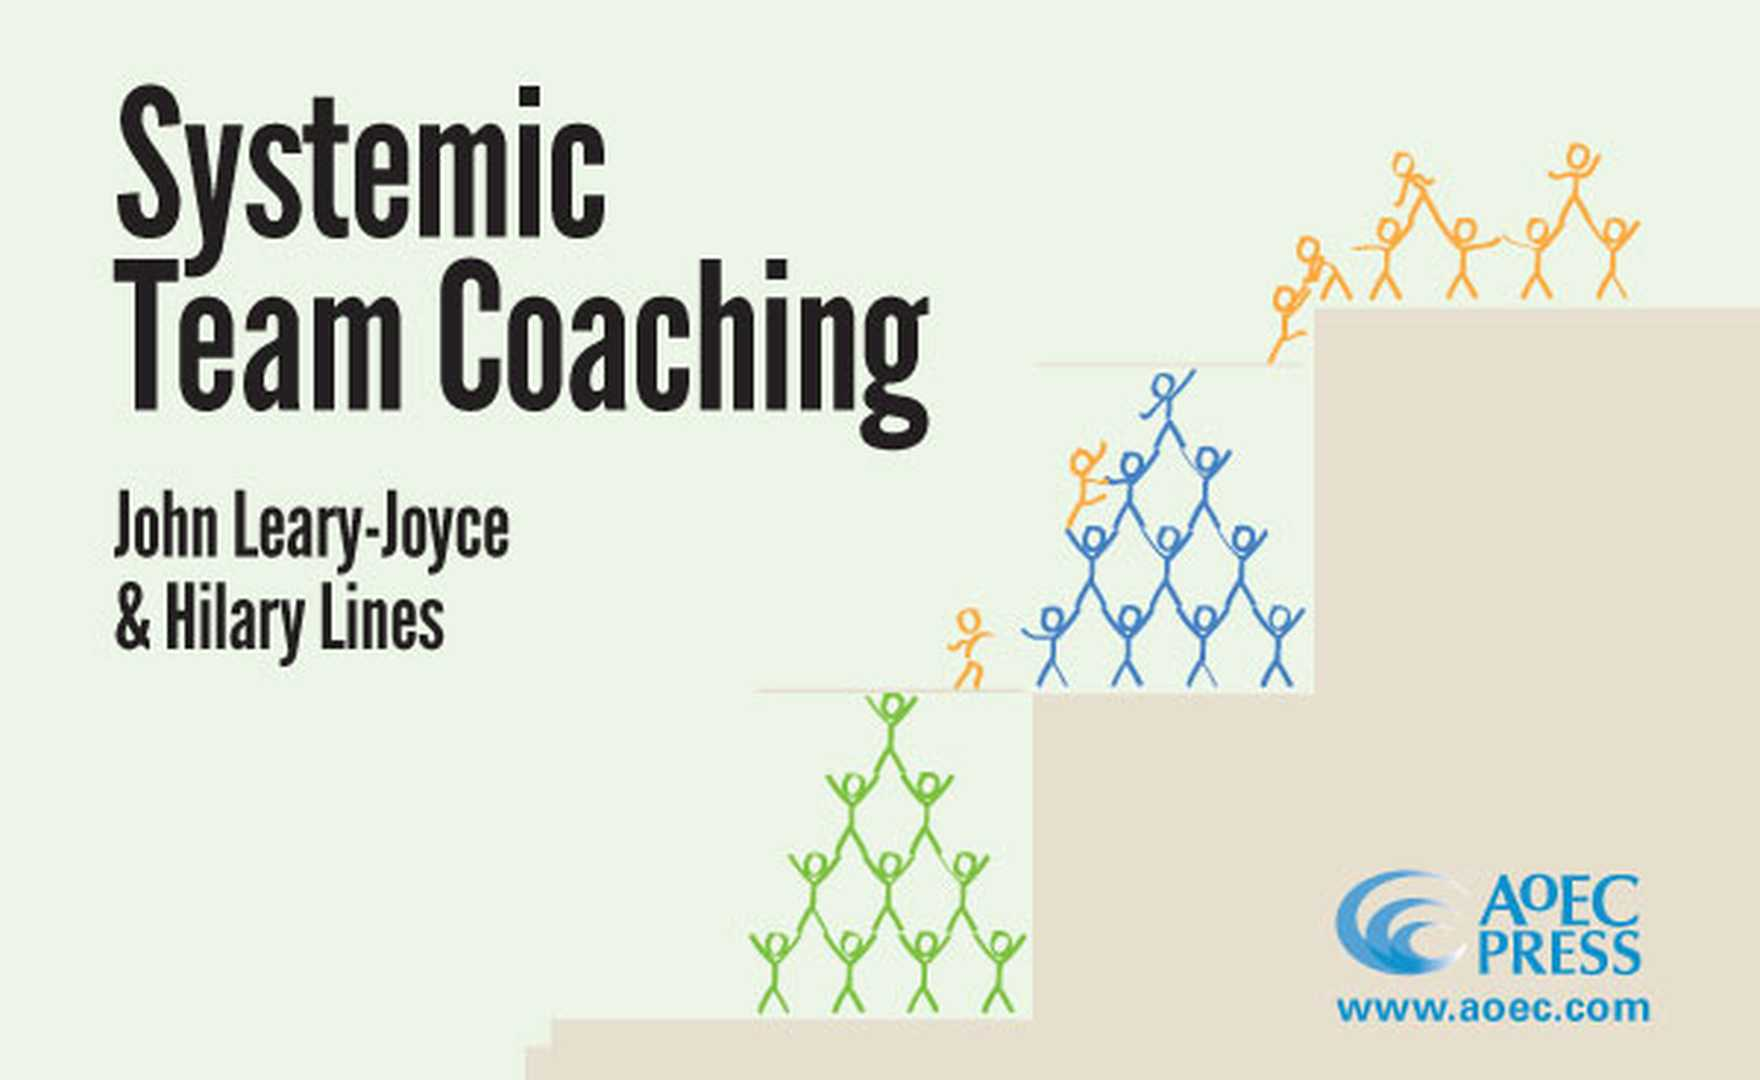 Book Review: Systemic Team Coaching